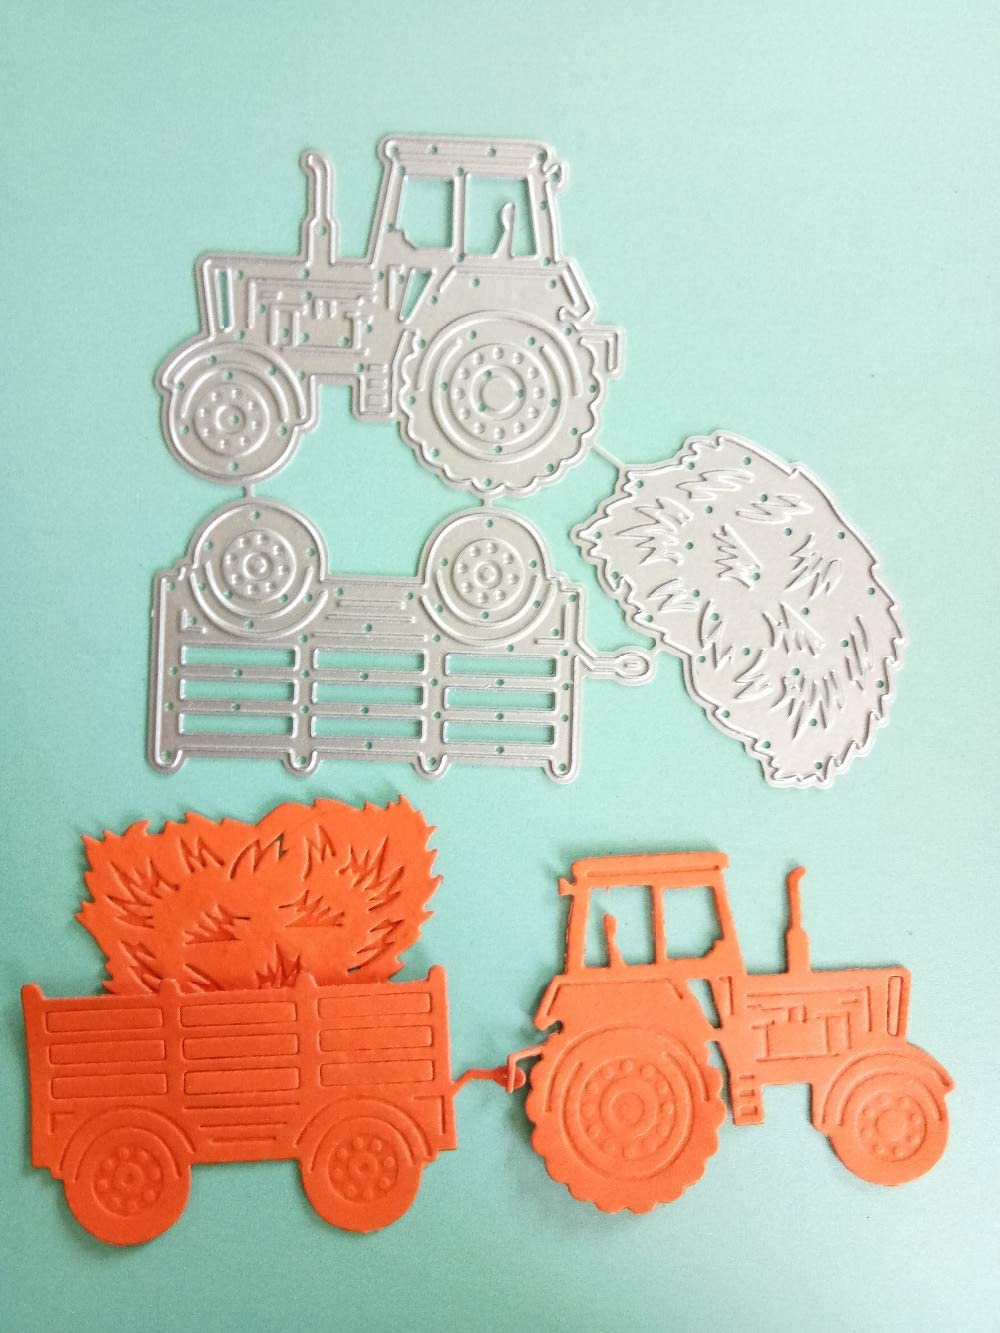 Metal Cut Cutting Dies Mold Tool Farm Vehicles Stitched Handmade Diy Craft Scrapbooking Scrapbook Stamps Embossing Die Making Stencil Template